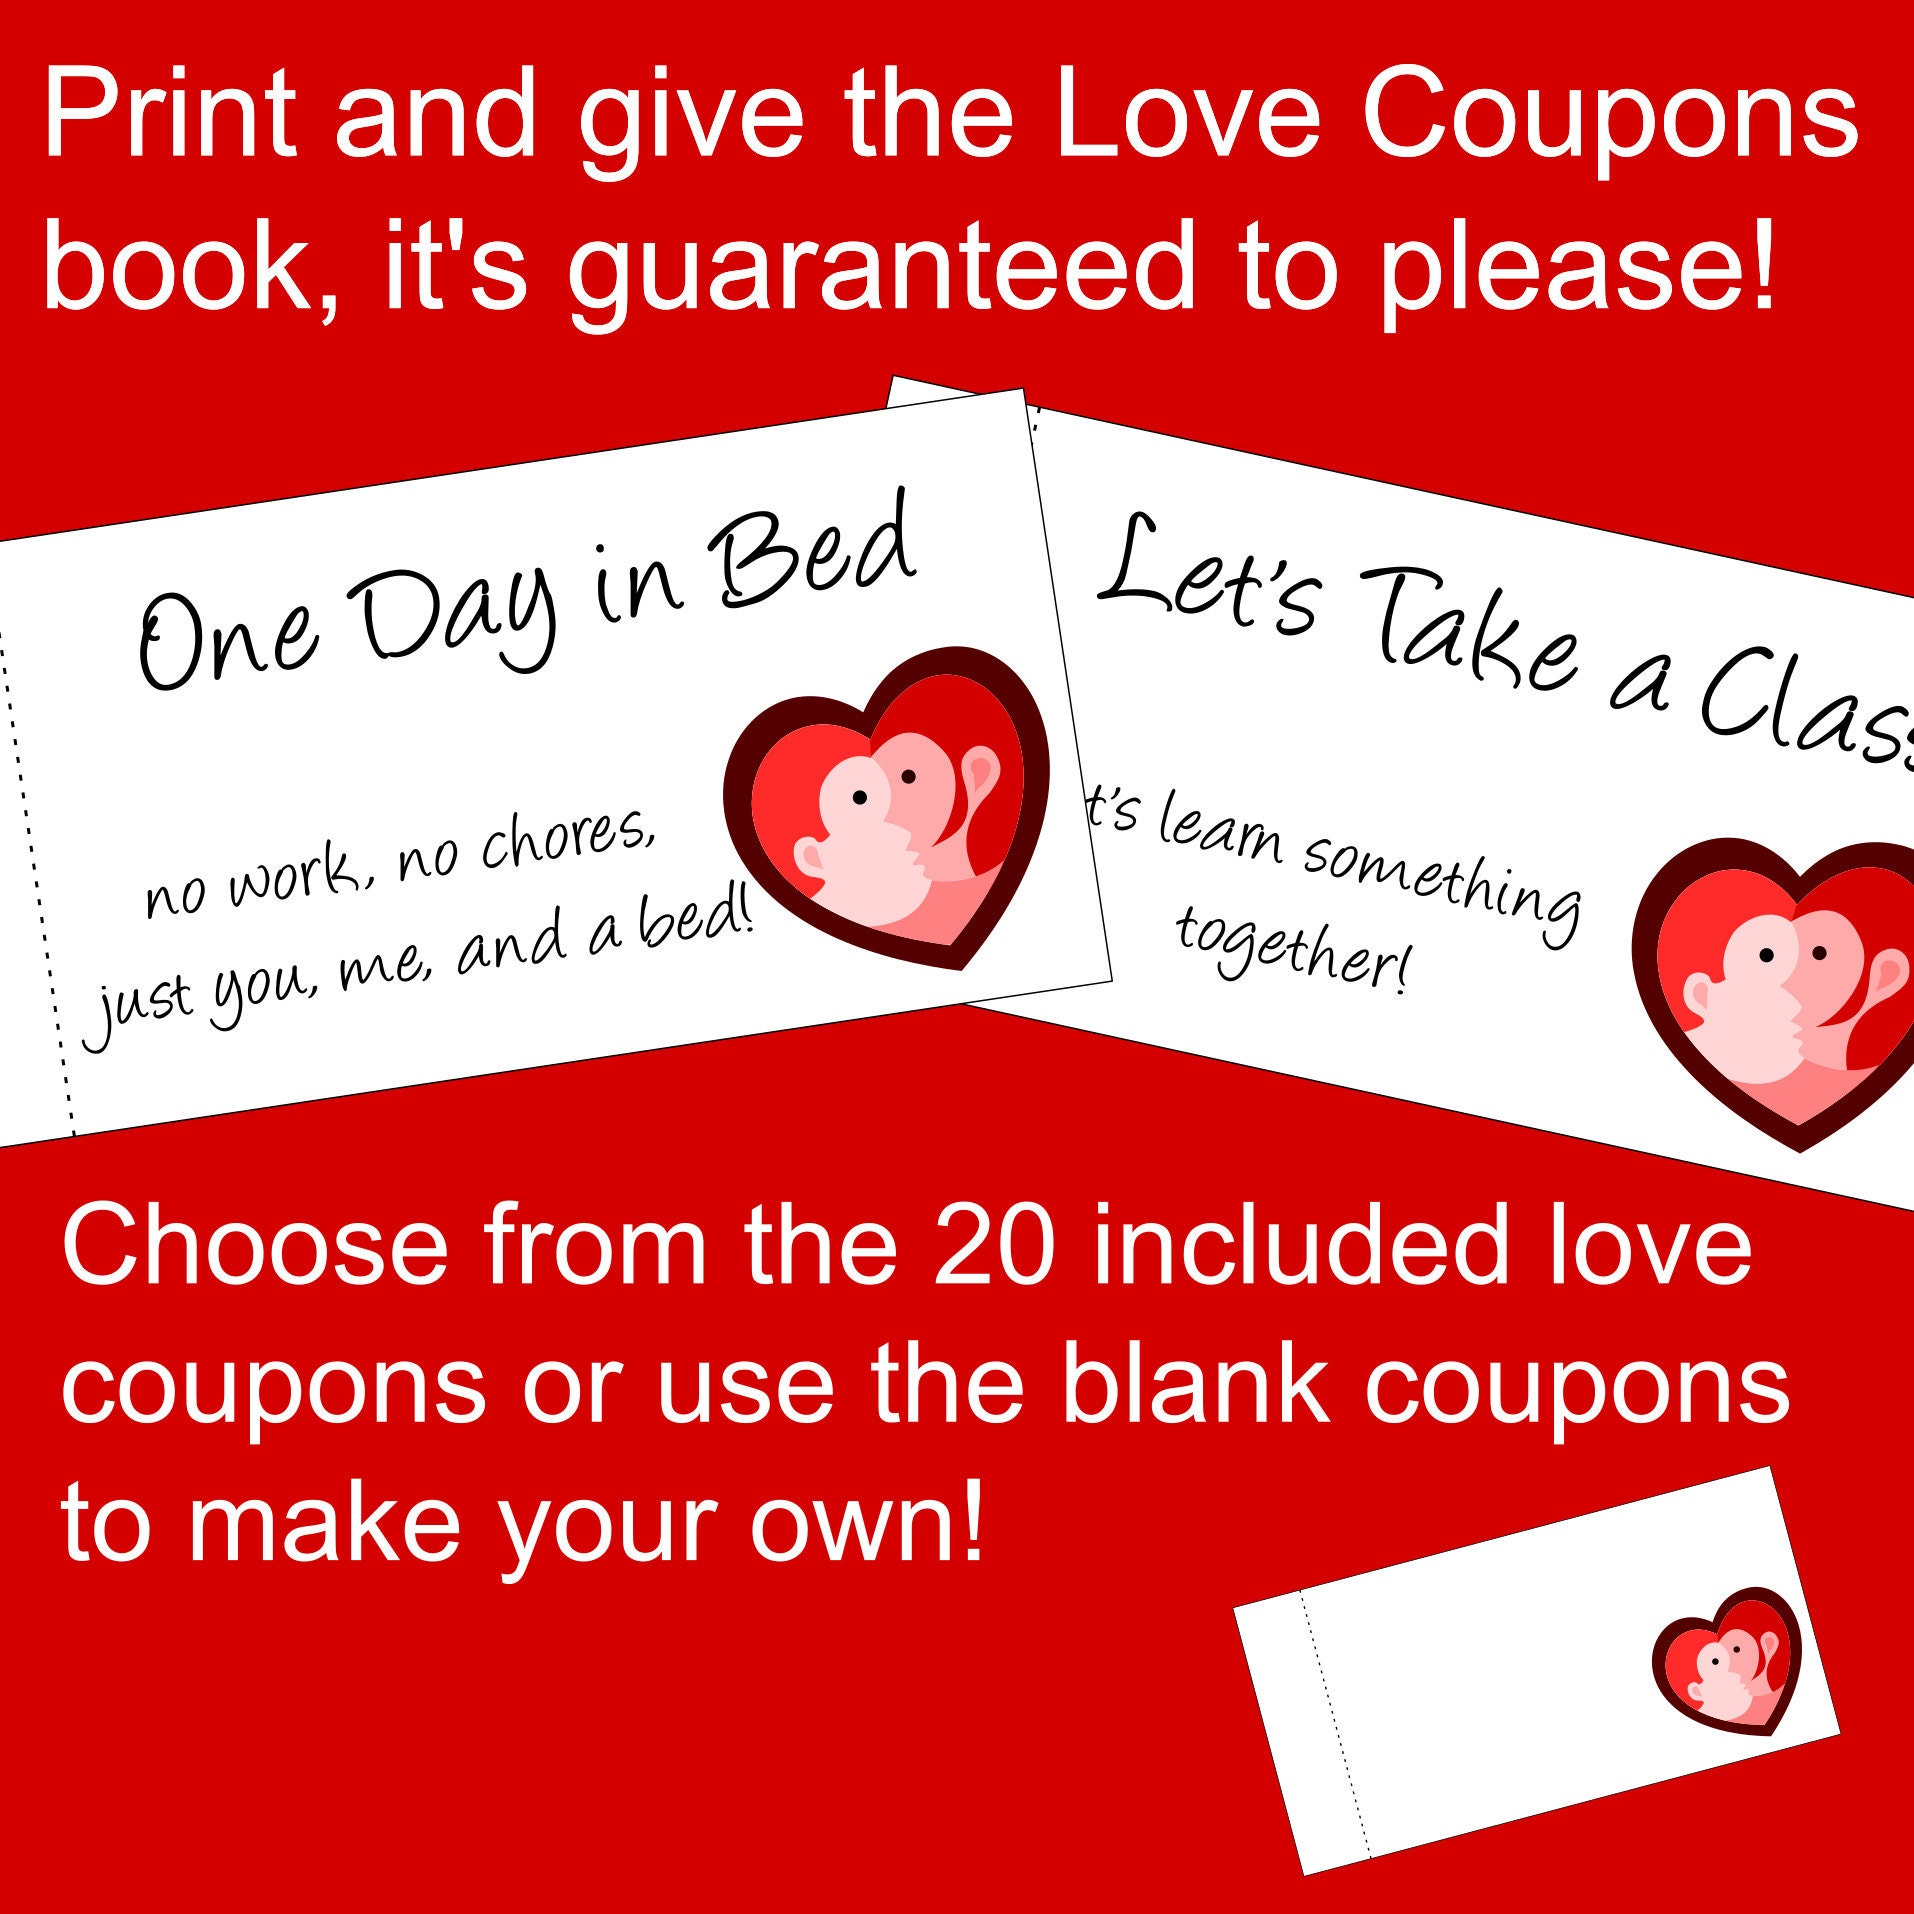 Printable Love Coupons booklet